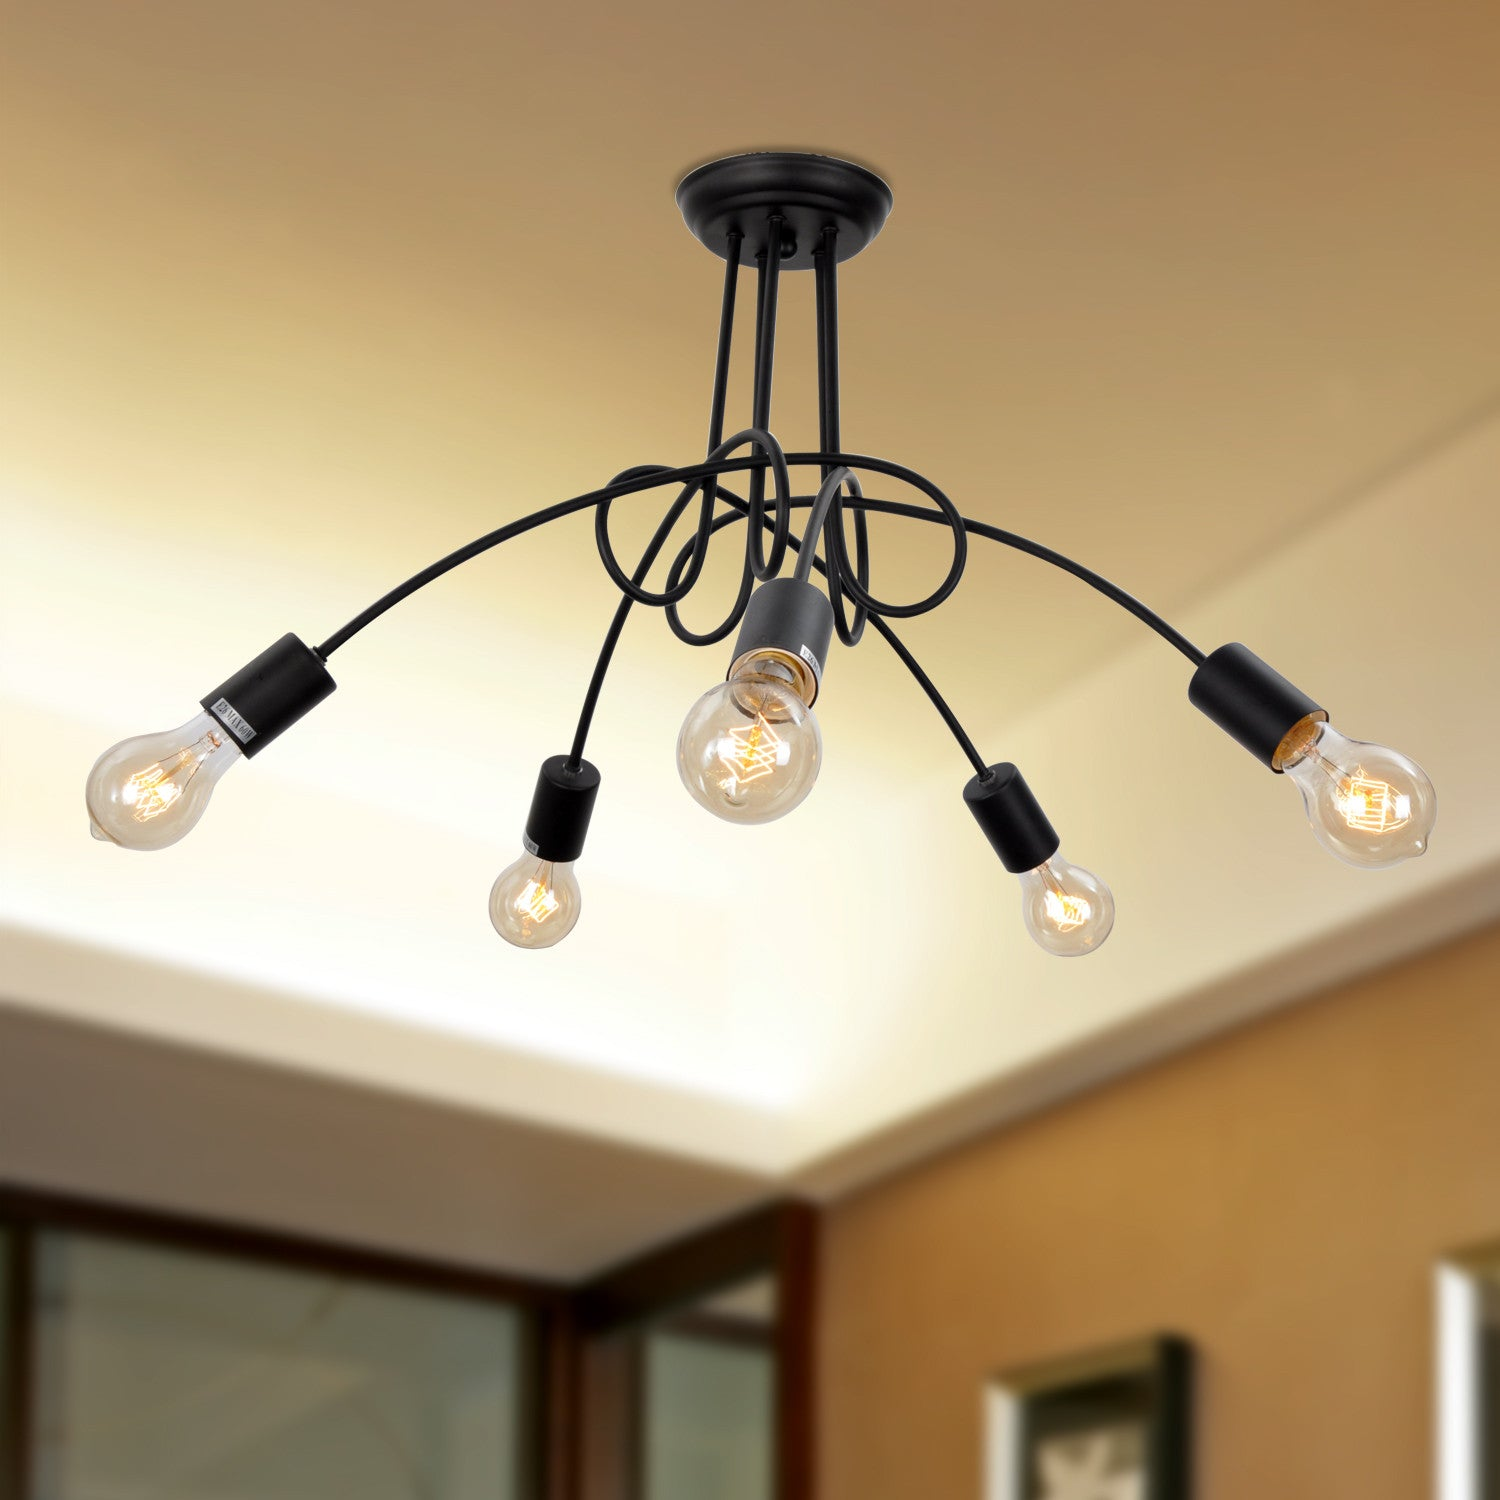 UNITARY BRAND Vintage Barn Black Chandelier Max 300W With 5 Lights Painted Finish